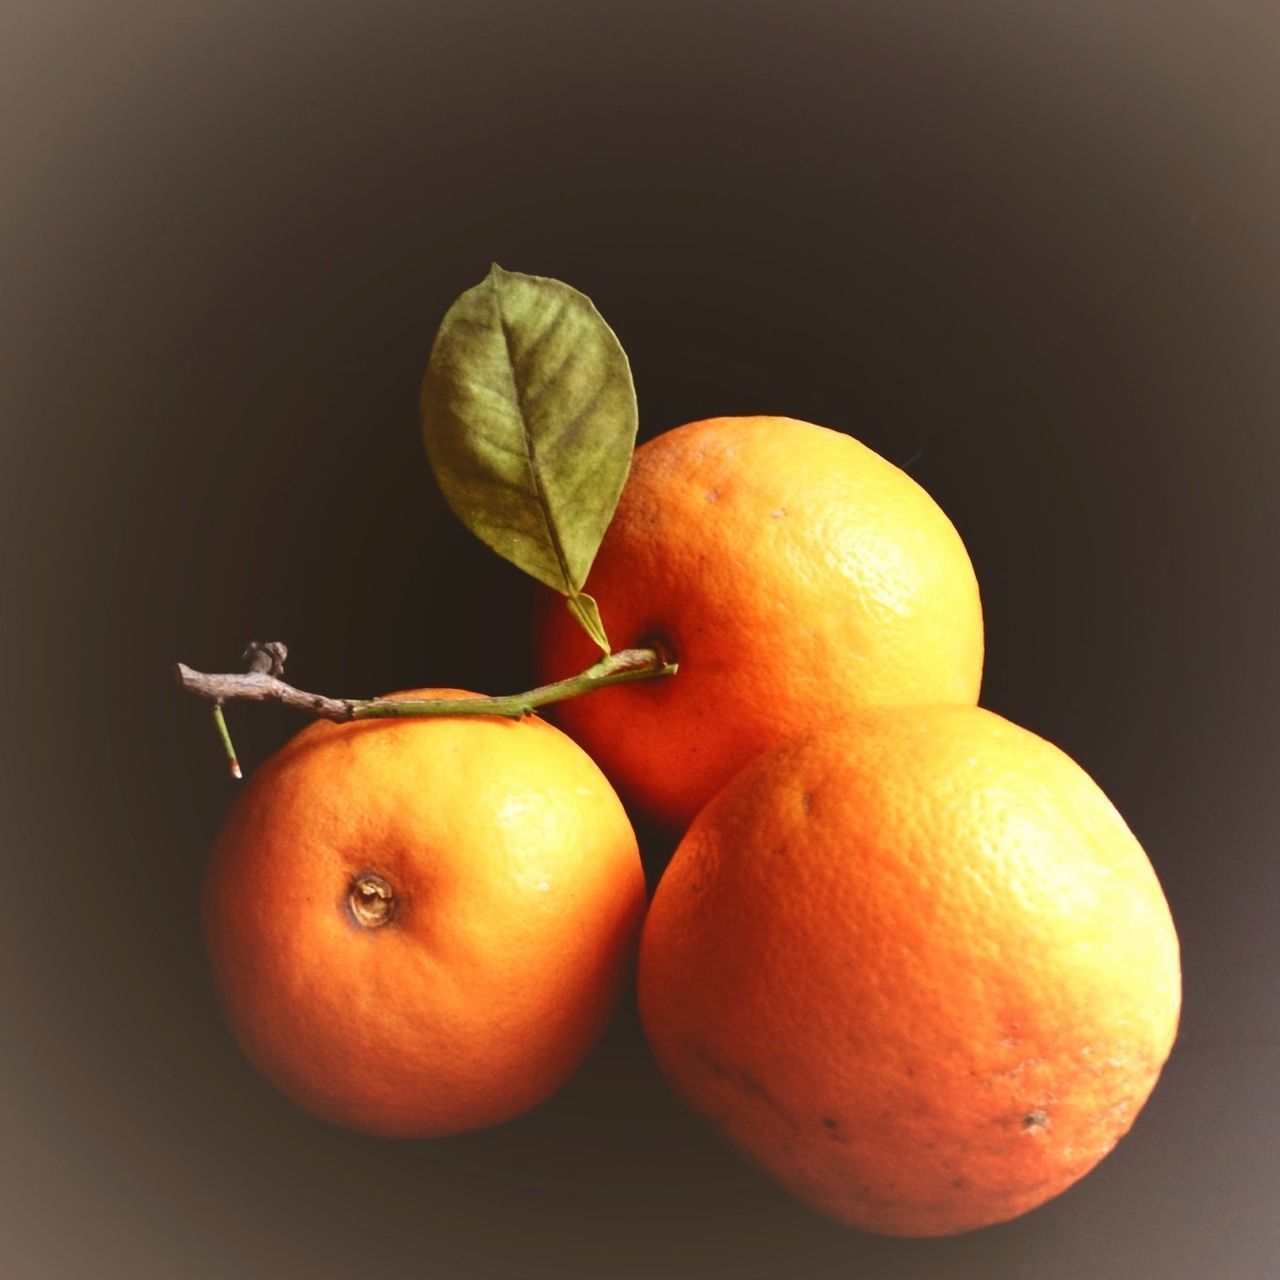 High Angle View Of Oranges Against Colored Background